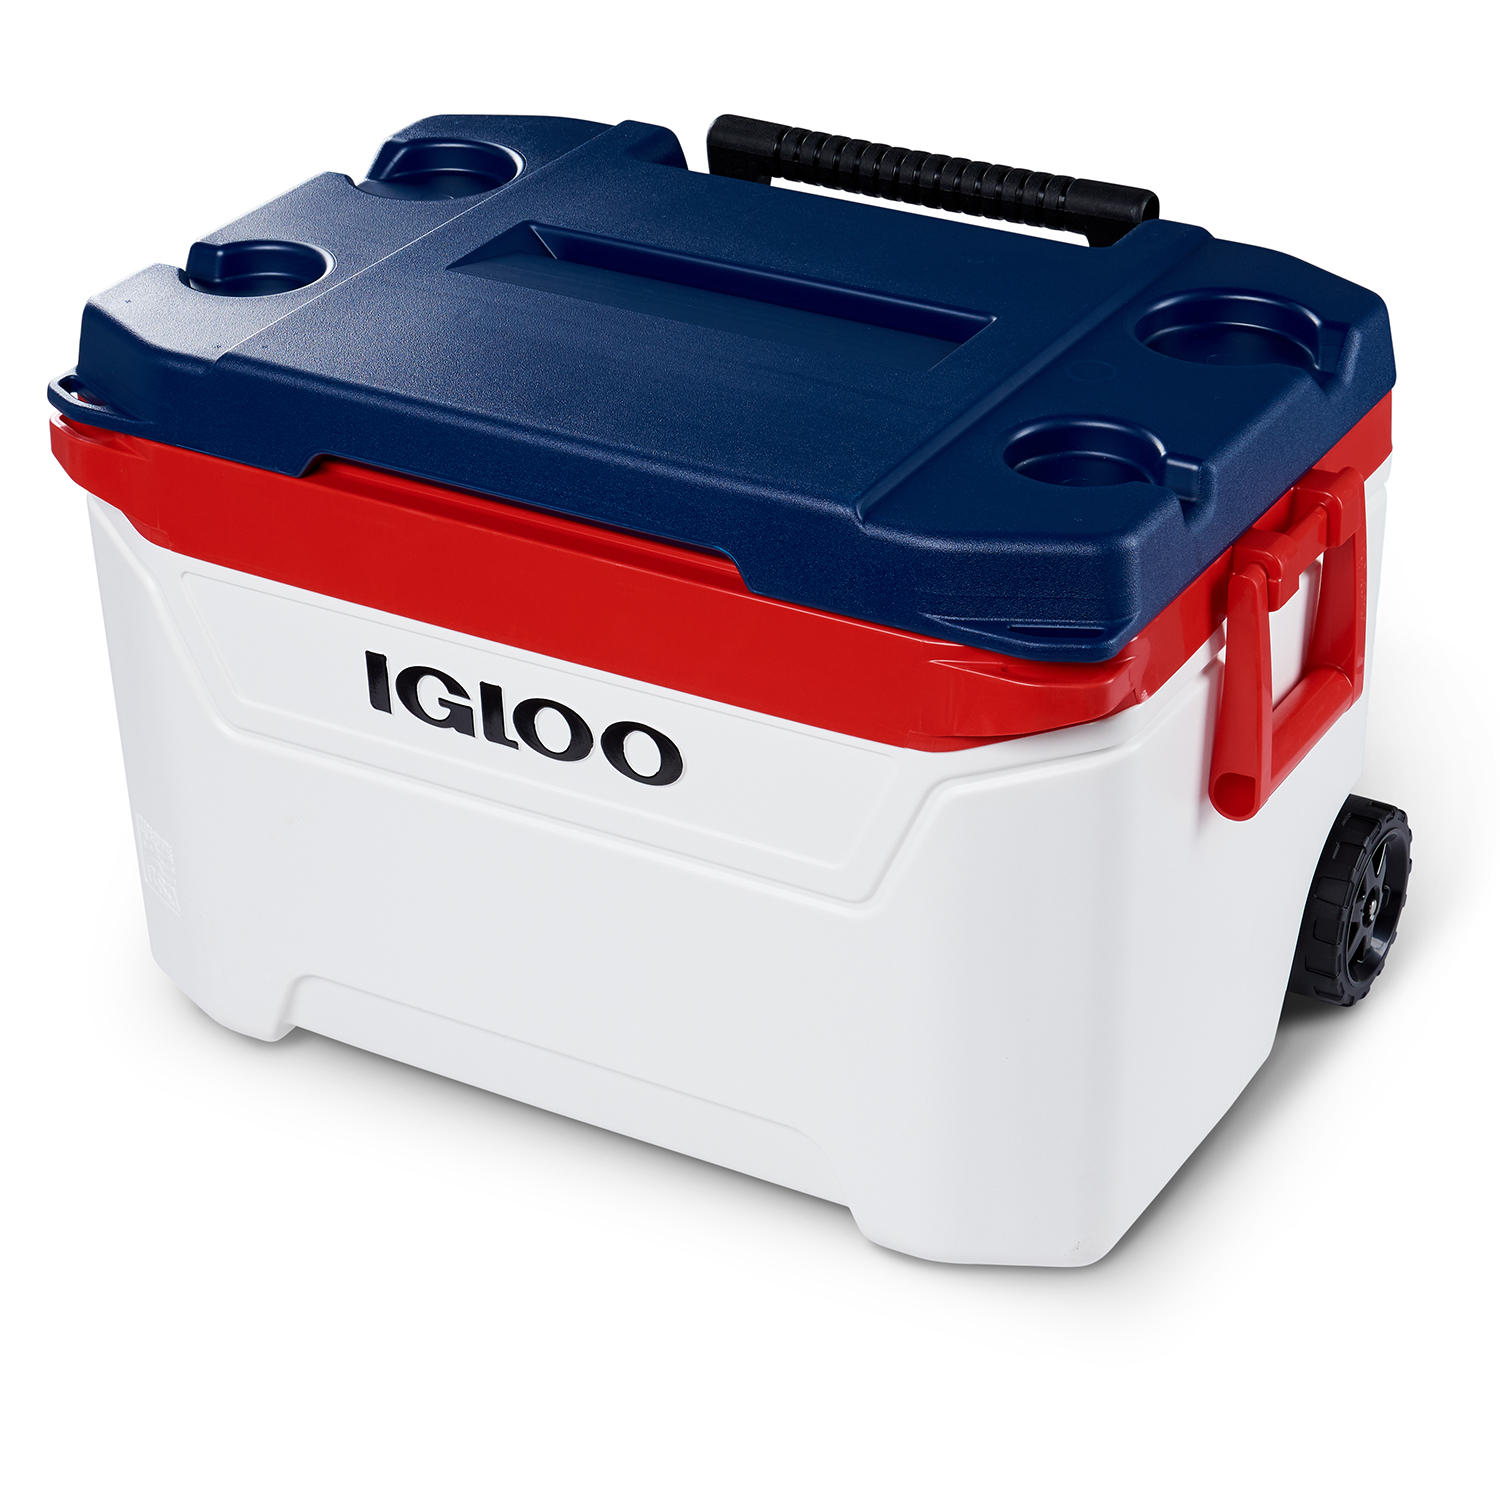 Igloo 60-Quart Sunset Roller Cooler